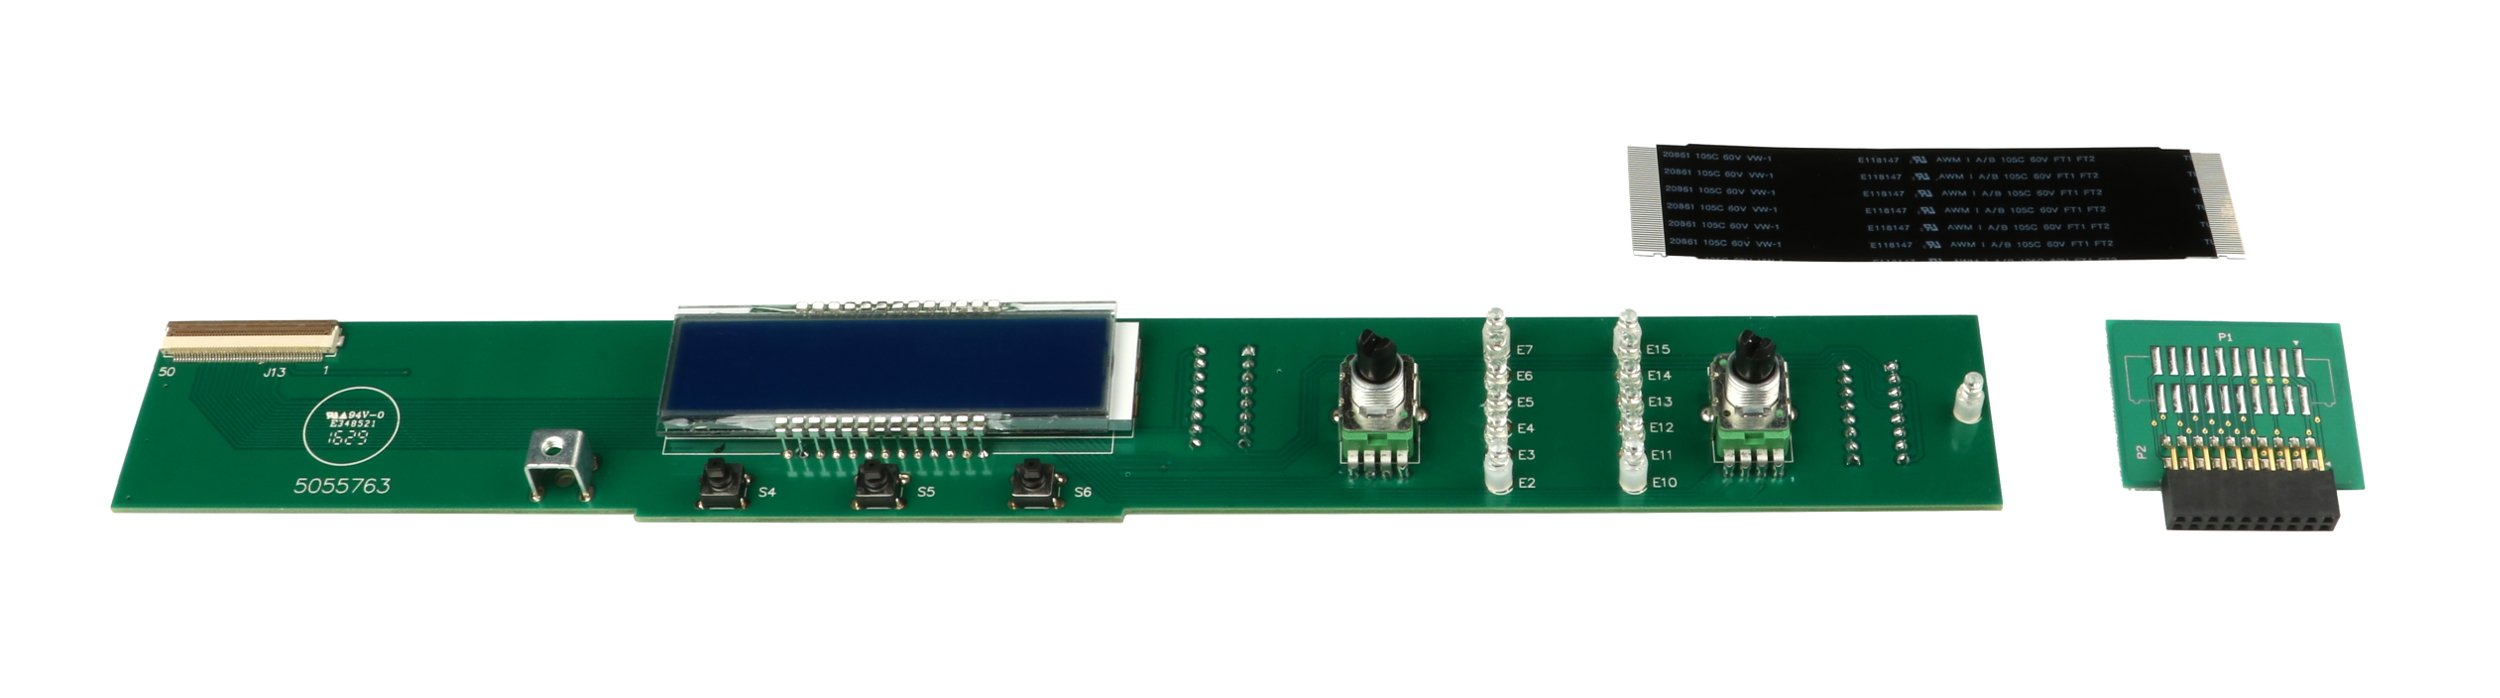 Display PCB Assembly for CDi1000